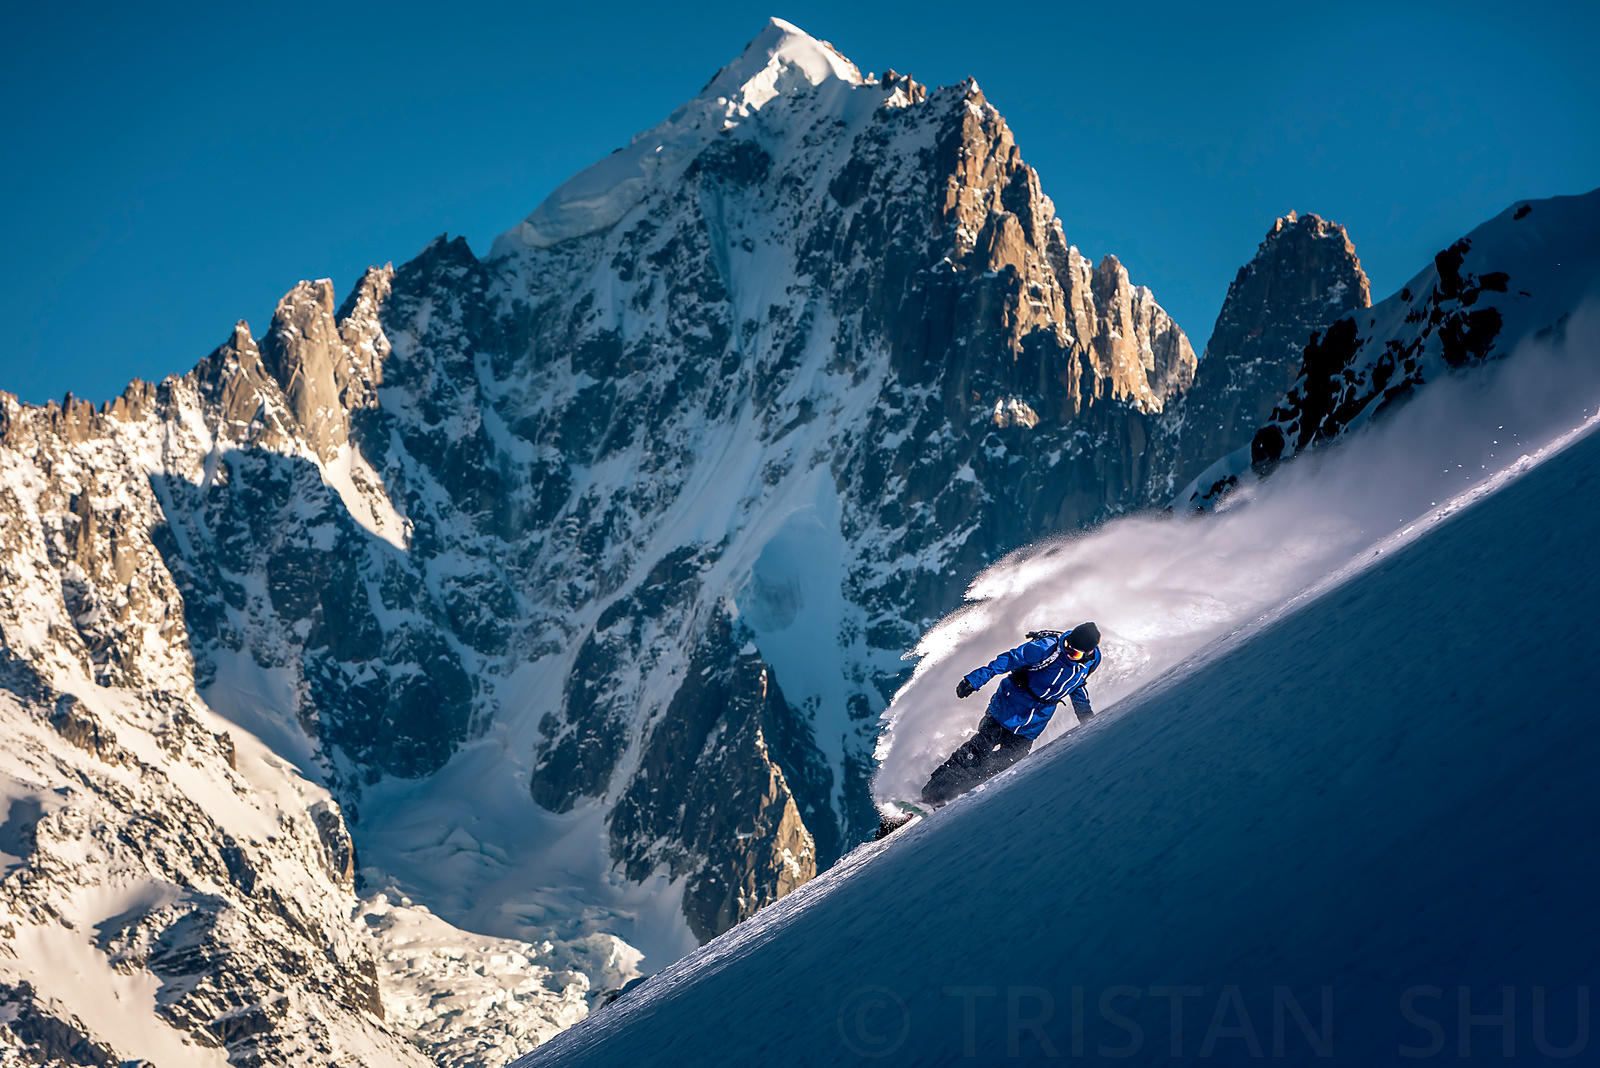 Powder turn in front of Aiguille Verte with Fabian Bodet